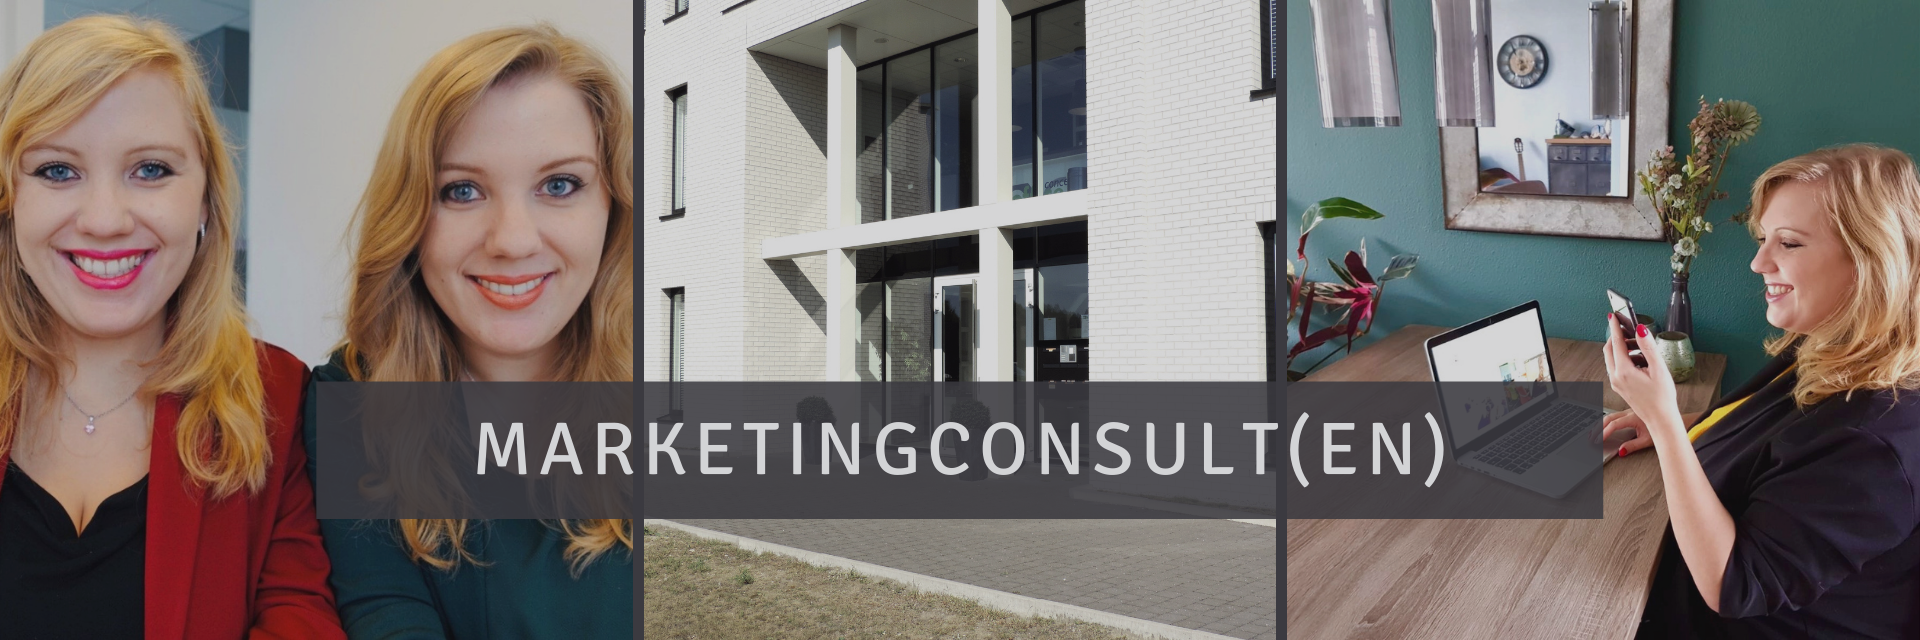 Marktingconsult, Coaching